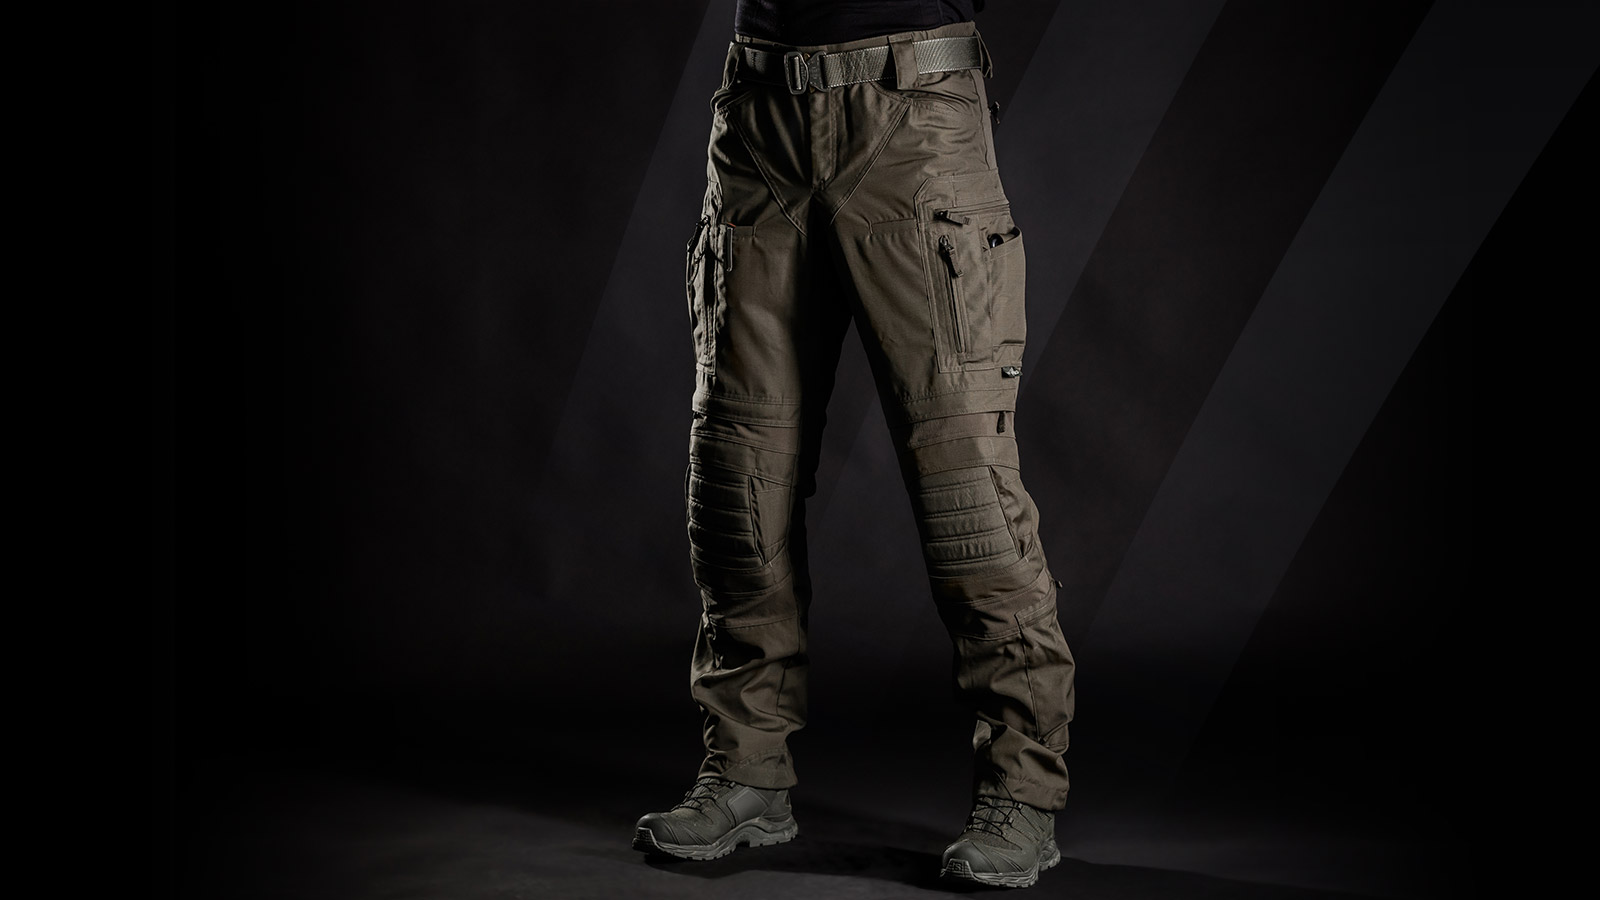 The Ultimate combat pants.